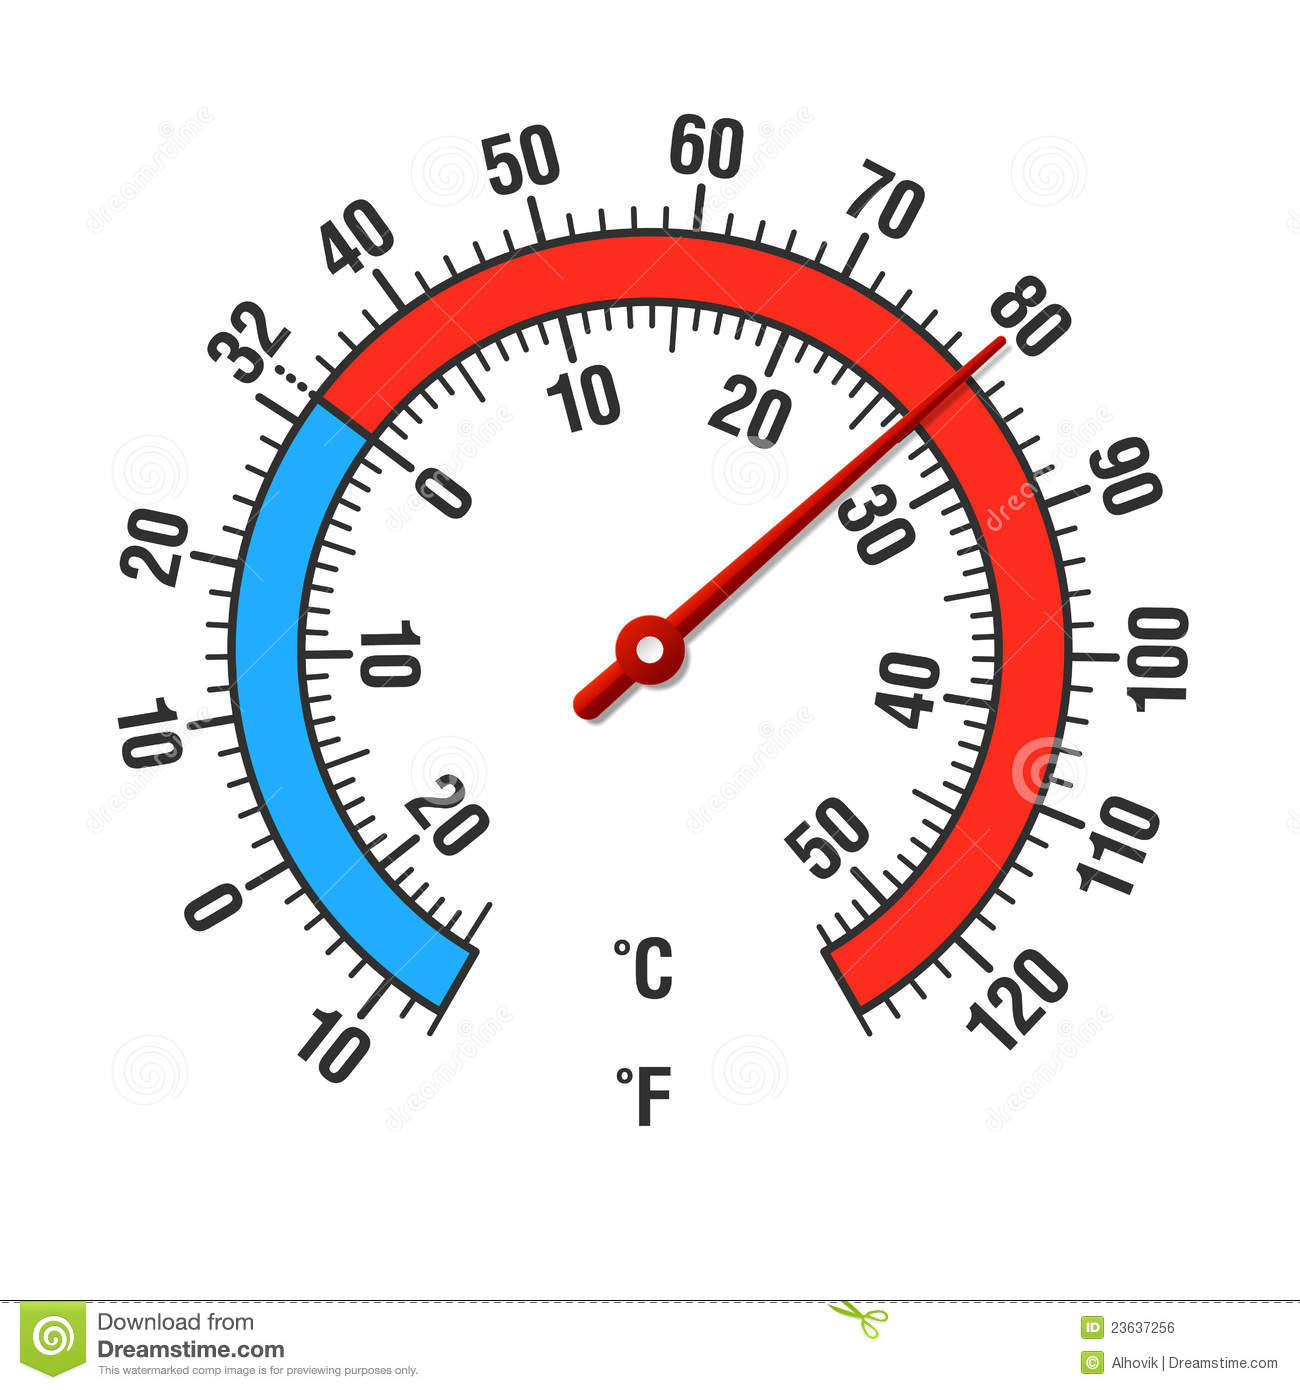 Celsius And Fahrenheit Thermometer Royalty Free Stock ...